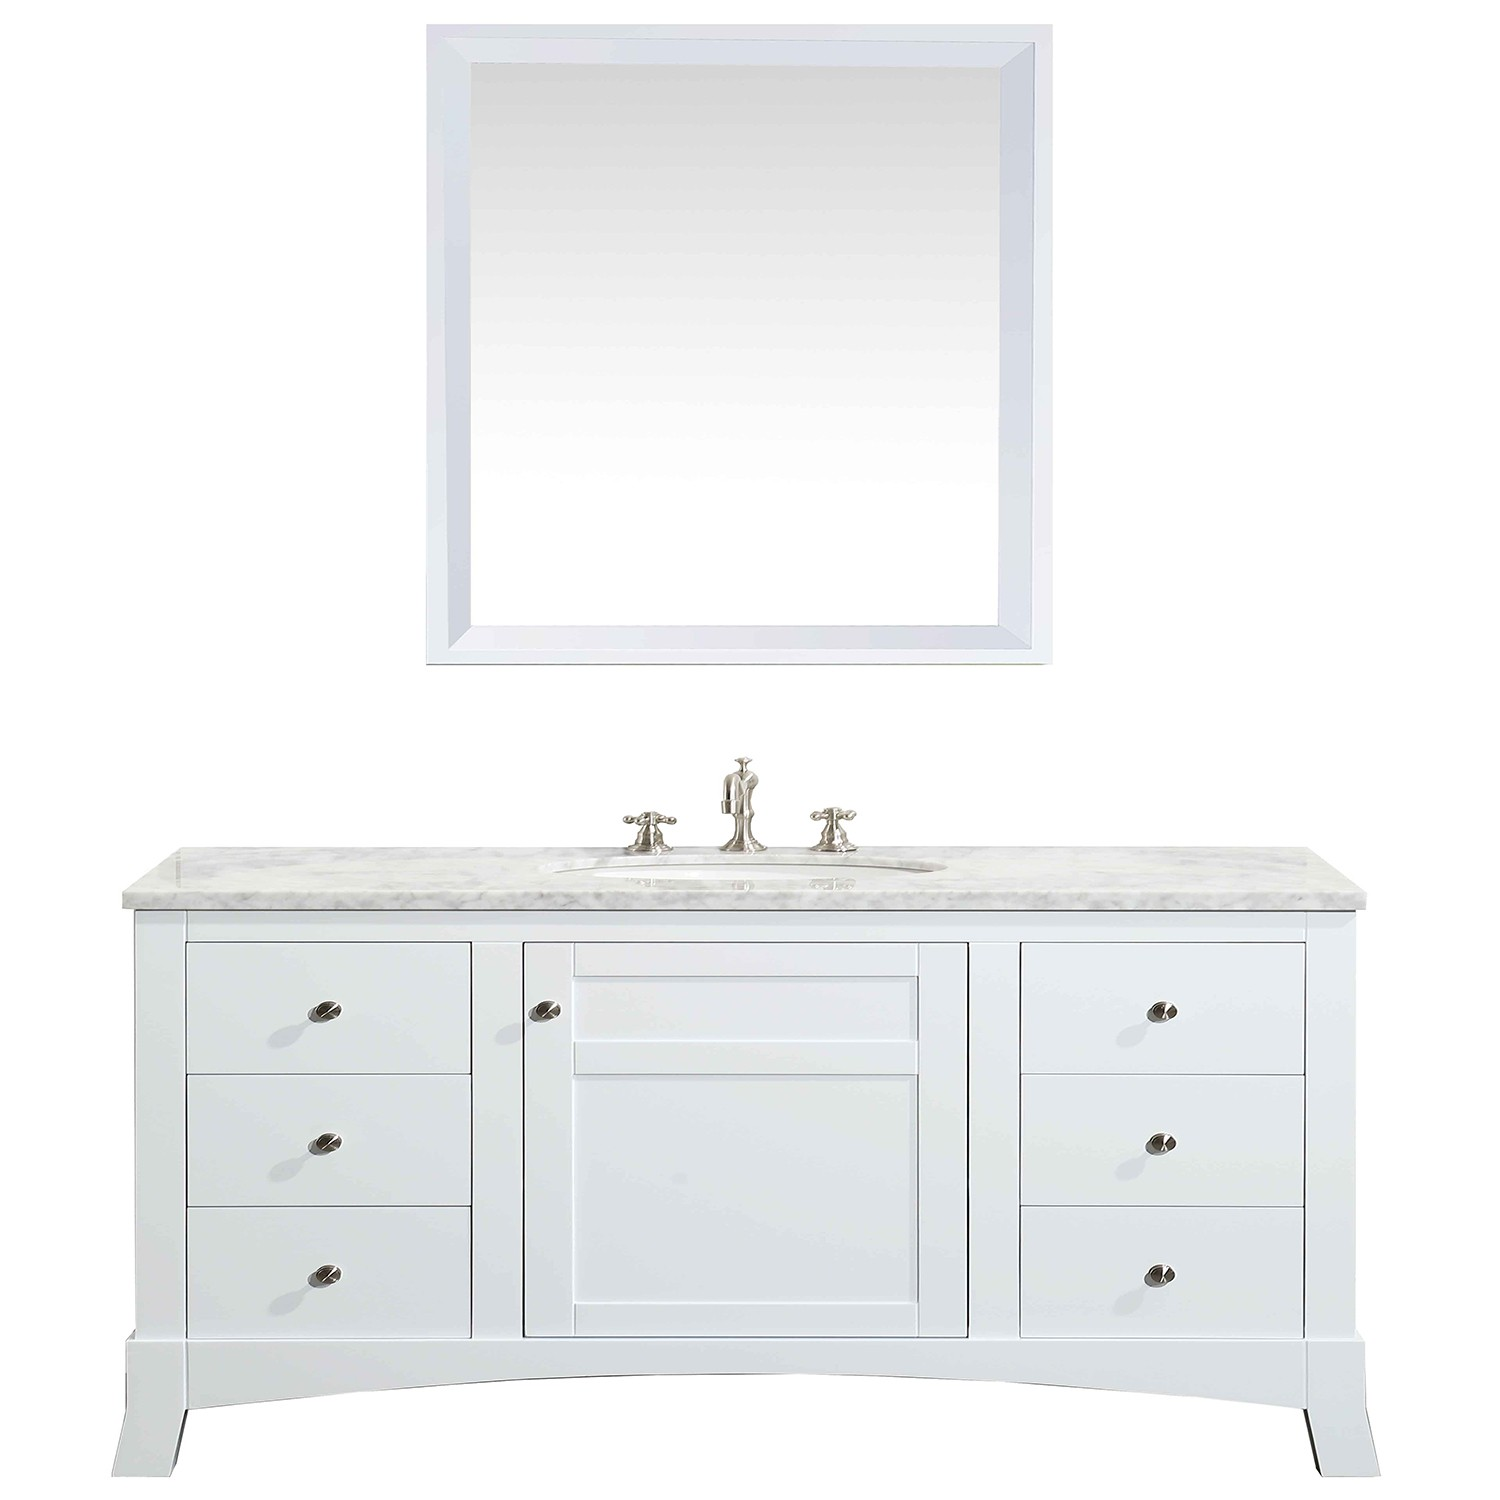 Eviva New York 48u2033 White Bathroom Vanity, With White Marble Carrera  Counter Top, U0026 Sink